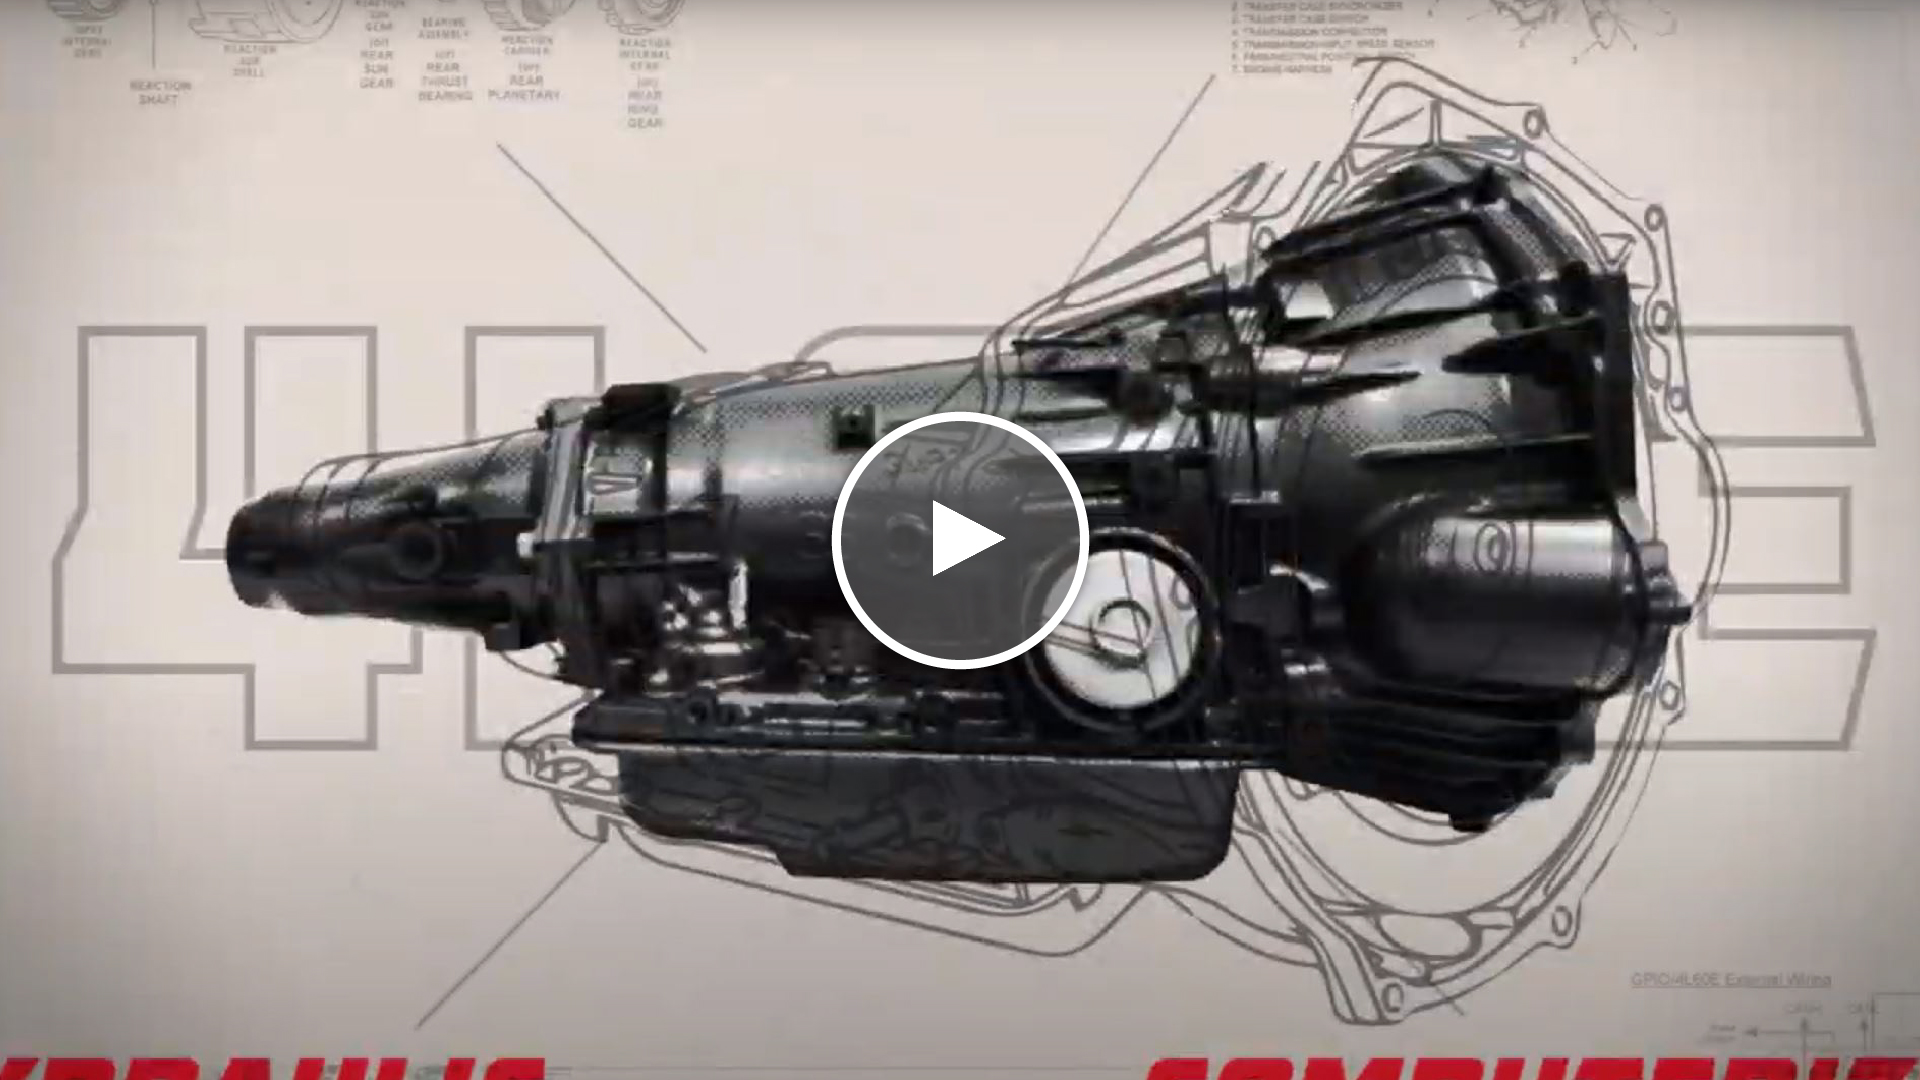 Raybestos Powertrain HT Explainer Video Crawfordsville, IN Motion Graphics Design by Media Wrench LLC